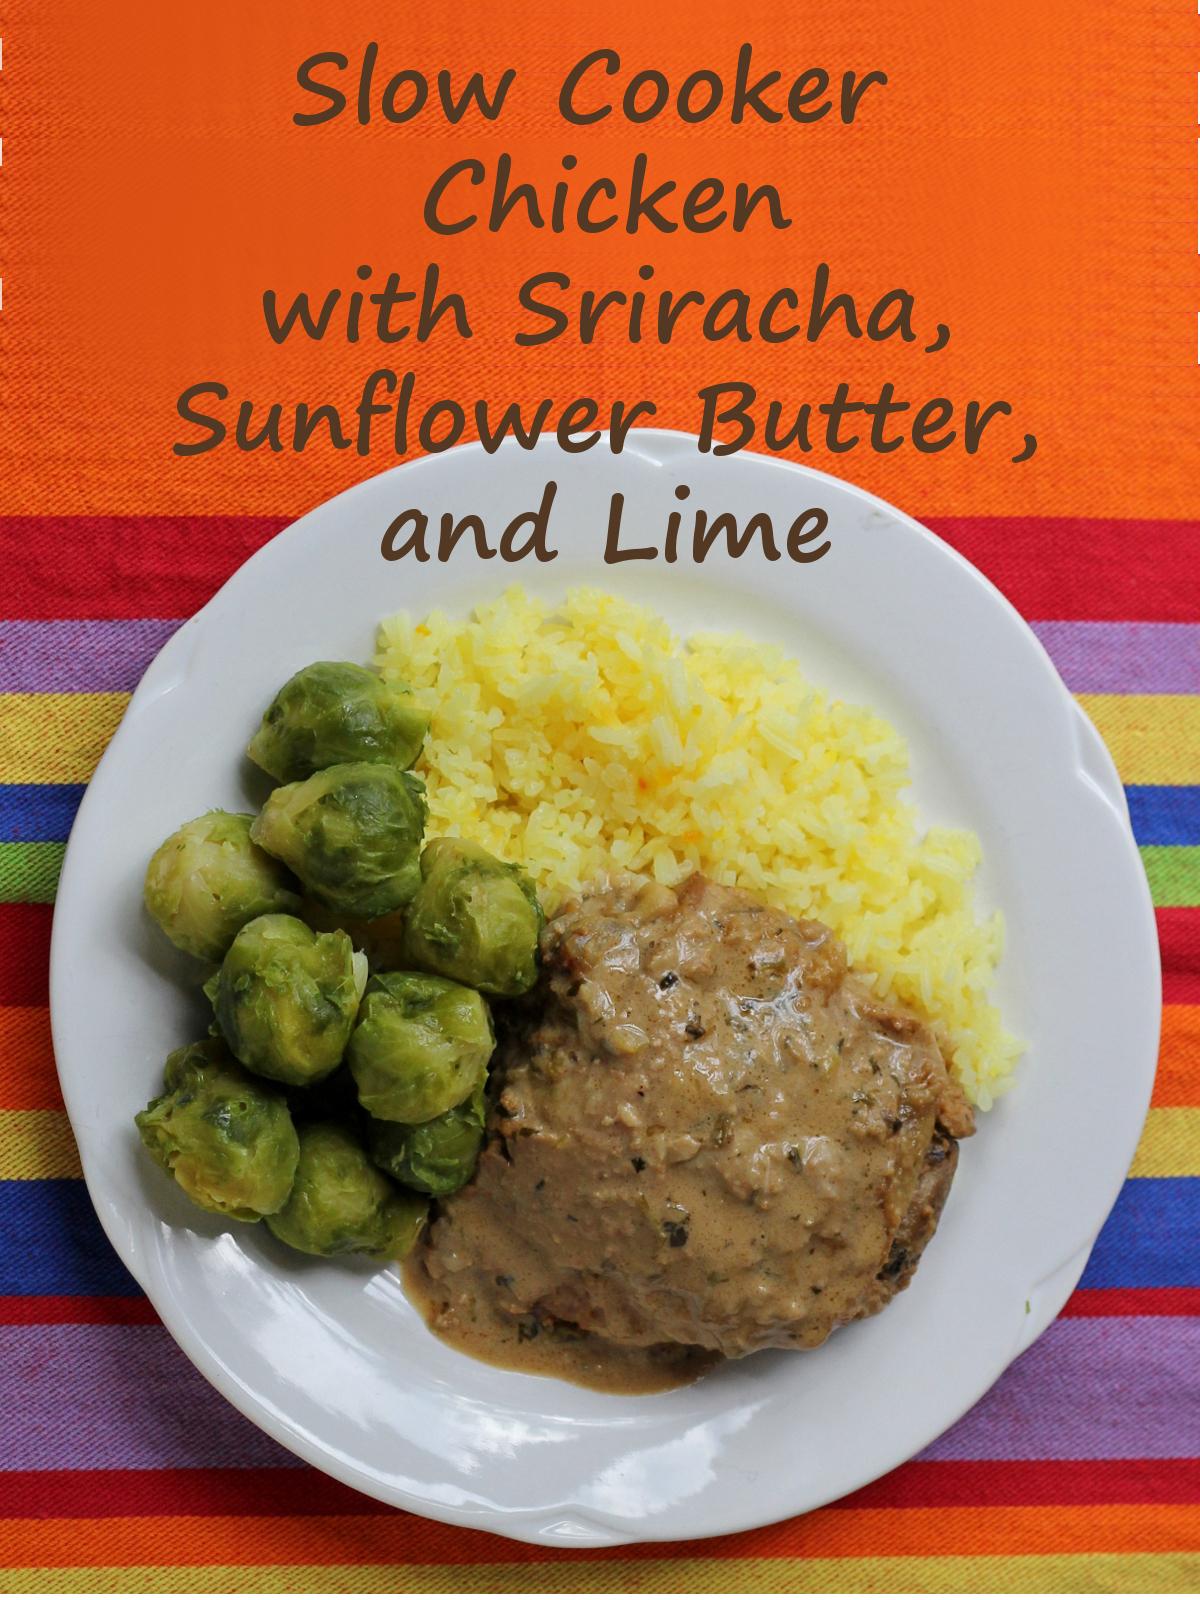 Slow Cooker Chicken with Sriracha, Sunflower Butter, and Lime